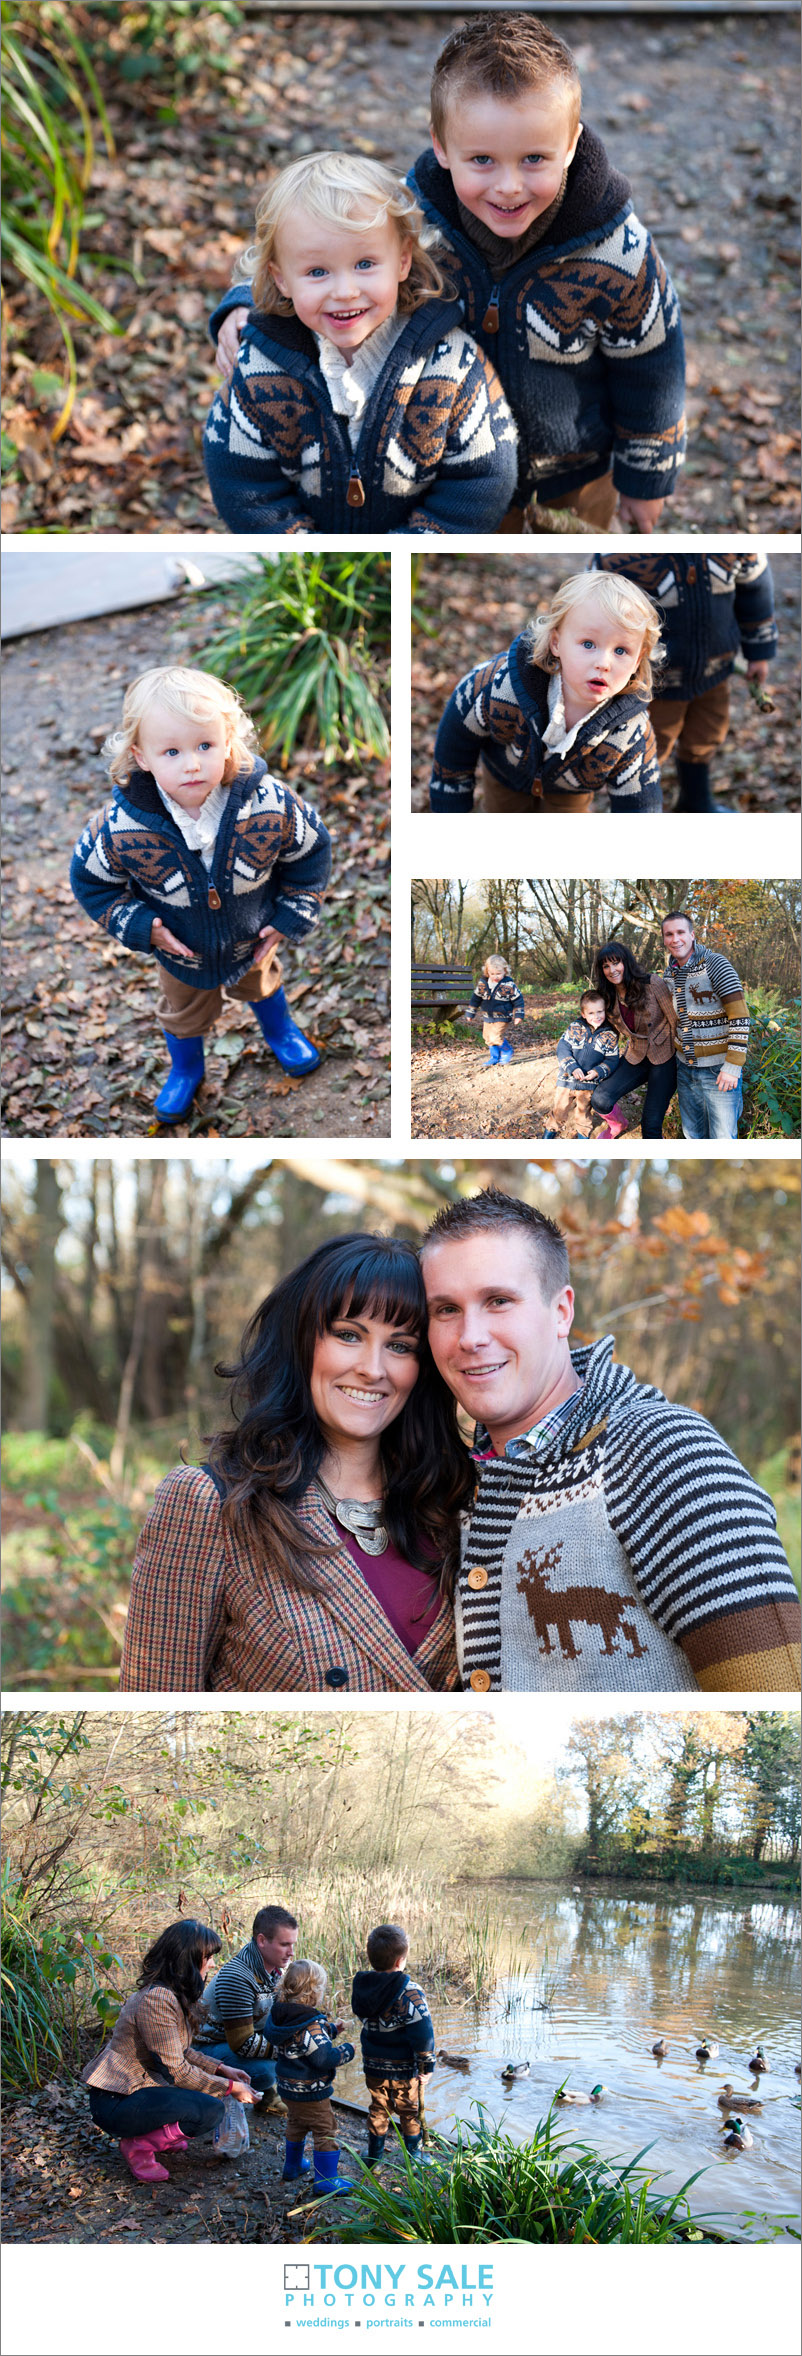 Lifestyle portrait photography in Essex